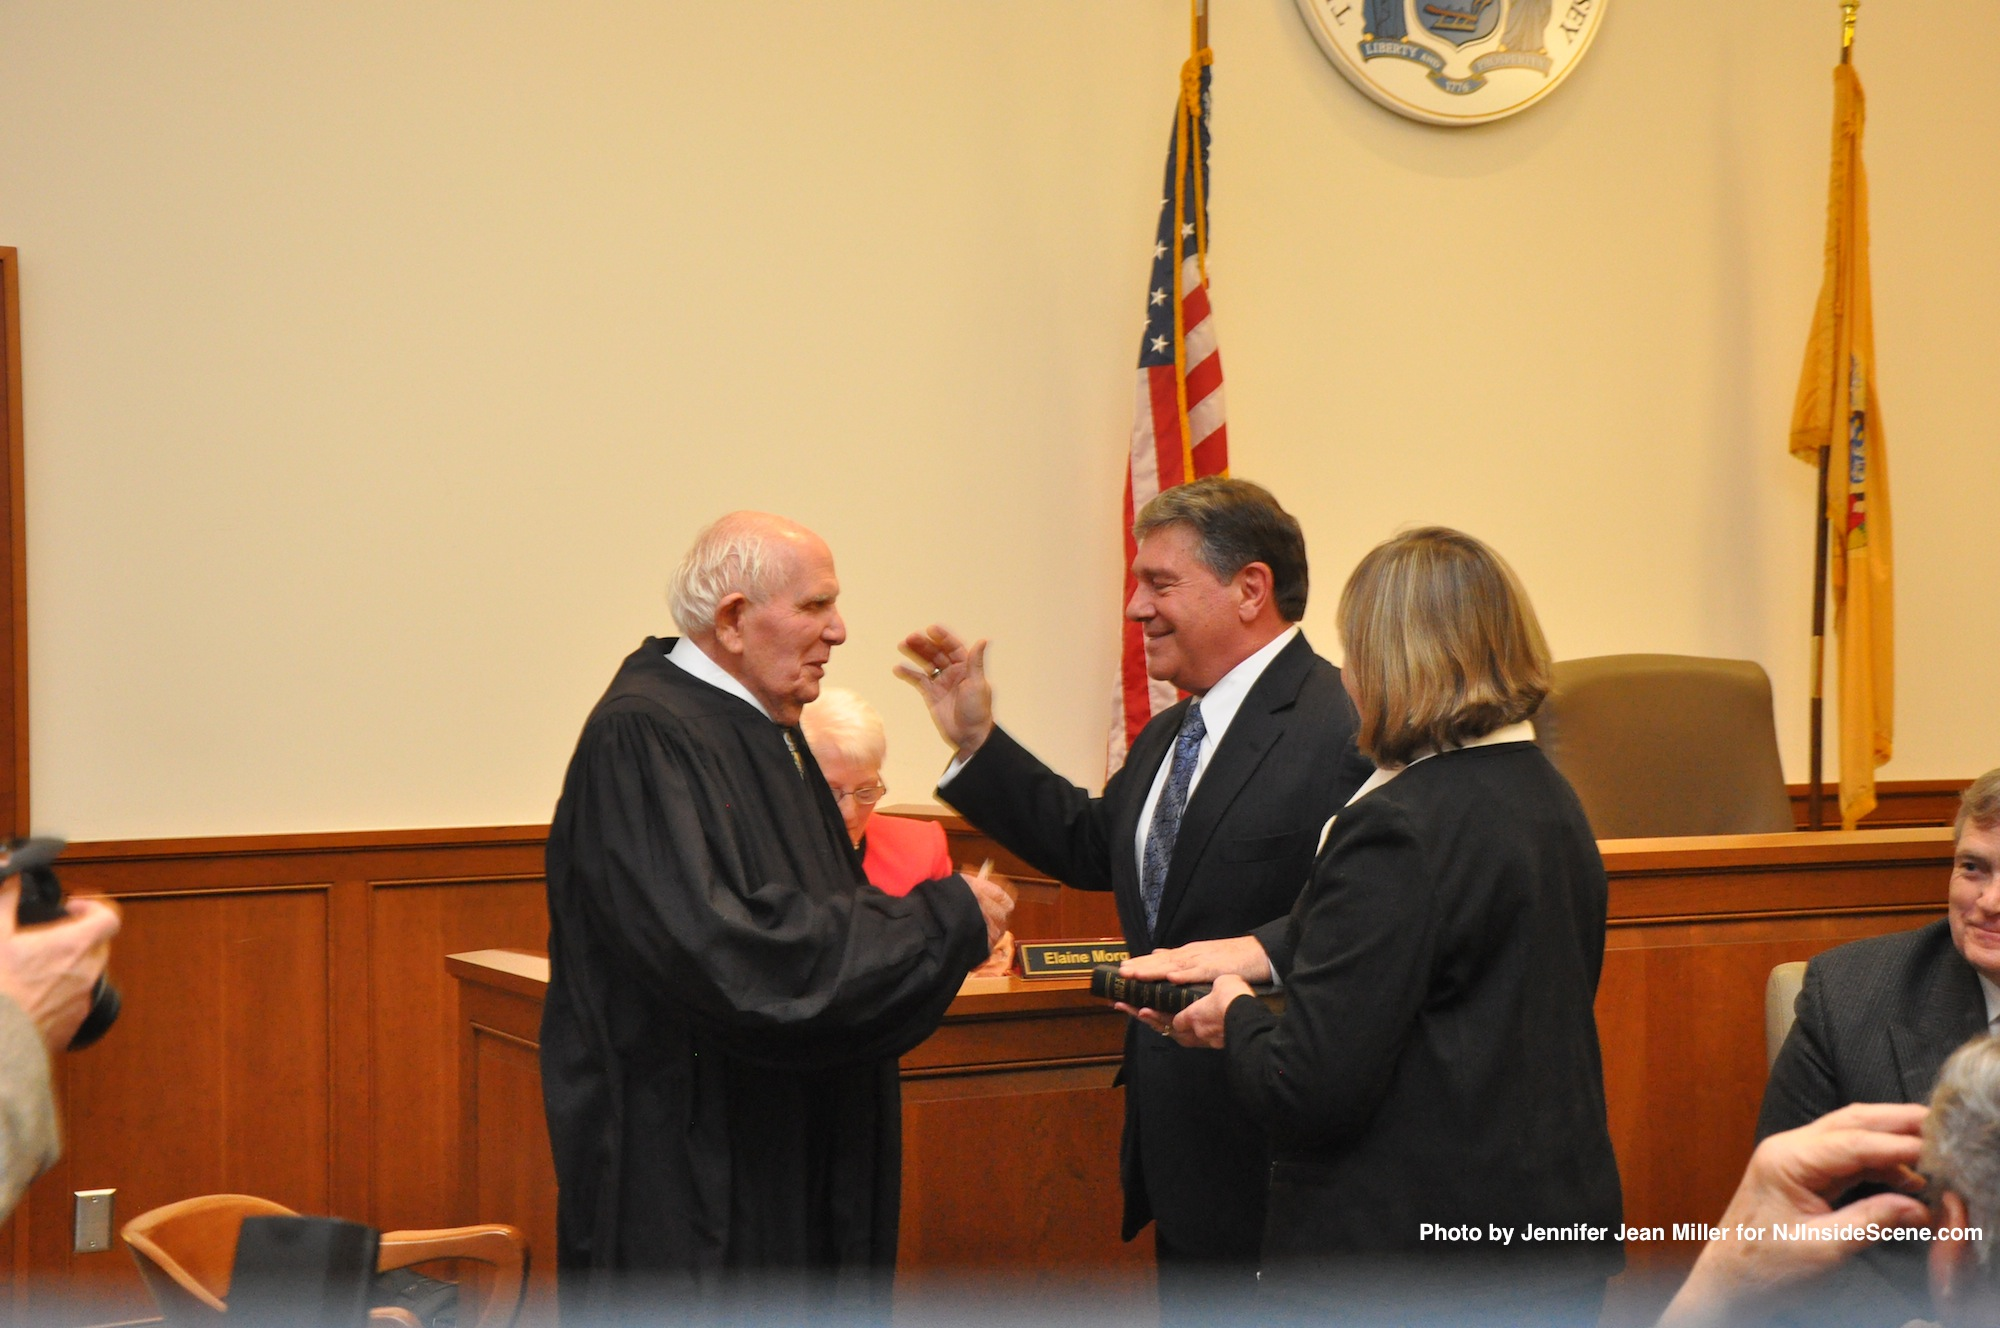 Surrogate Gary Chiusano, sworn in by Judge Frederic Weber. Laura Camp, Deputy Surrogate, participated. Chiusano's wife, Carol, was unable to attend, as she has for past swearing ins, due to a work conflict following the snowstorm.